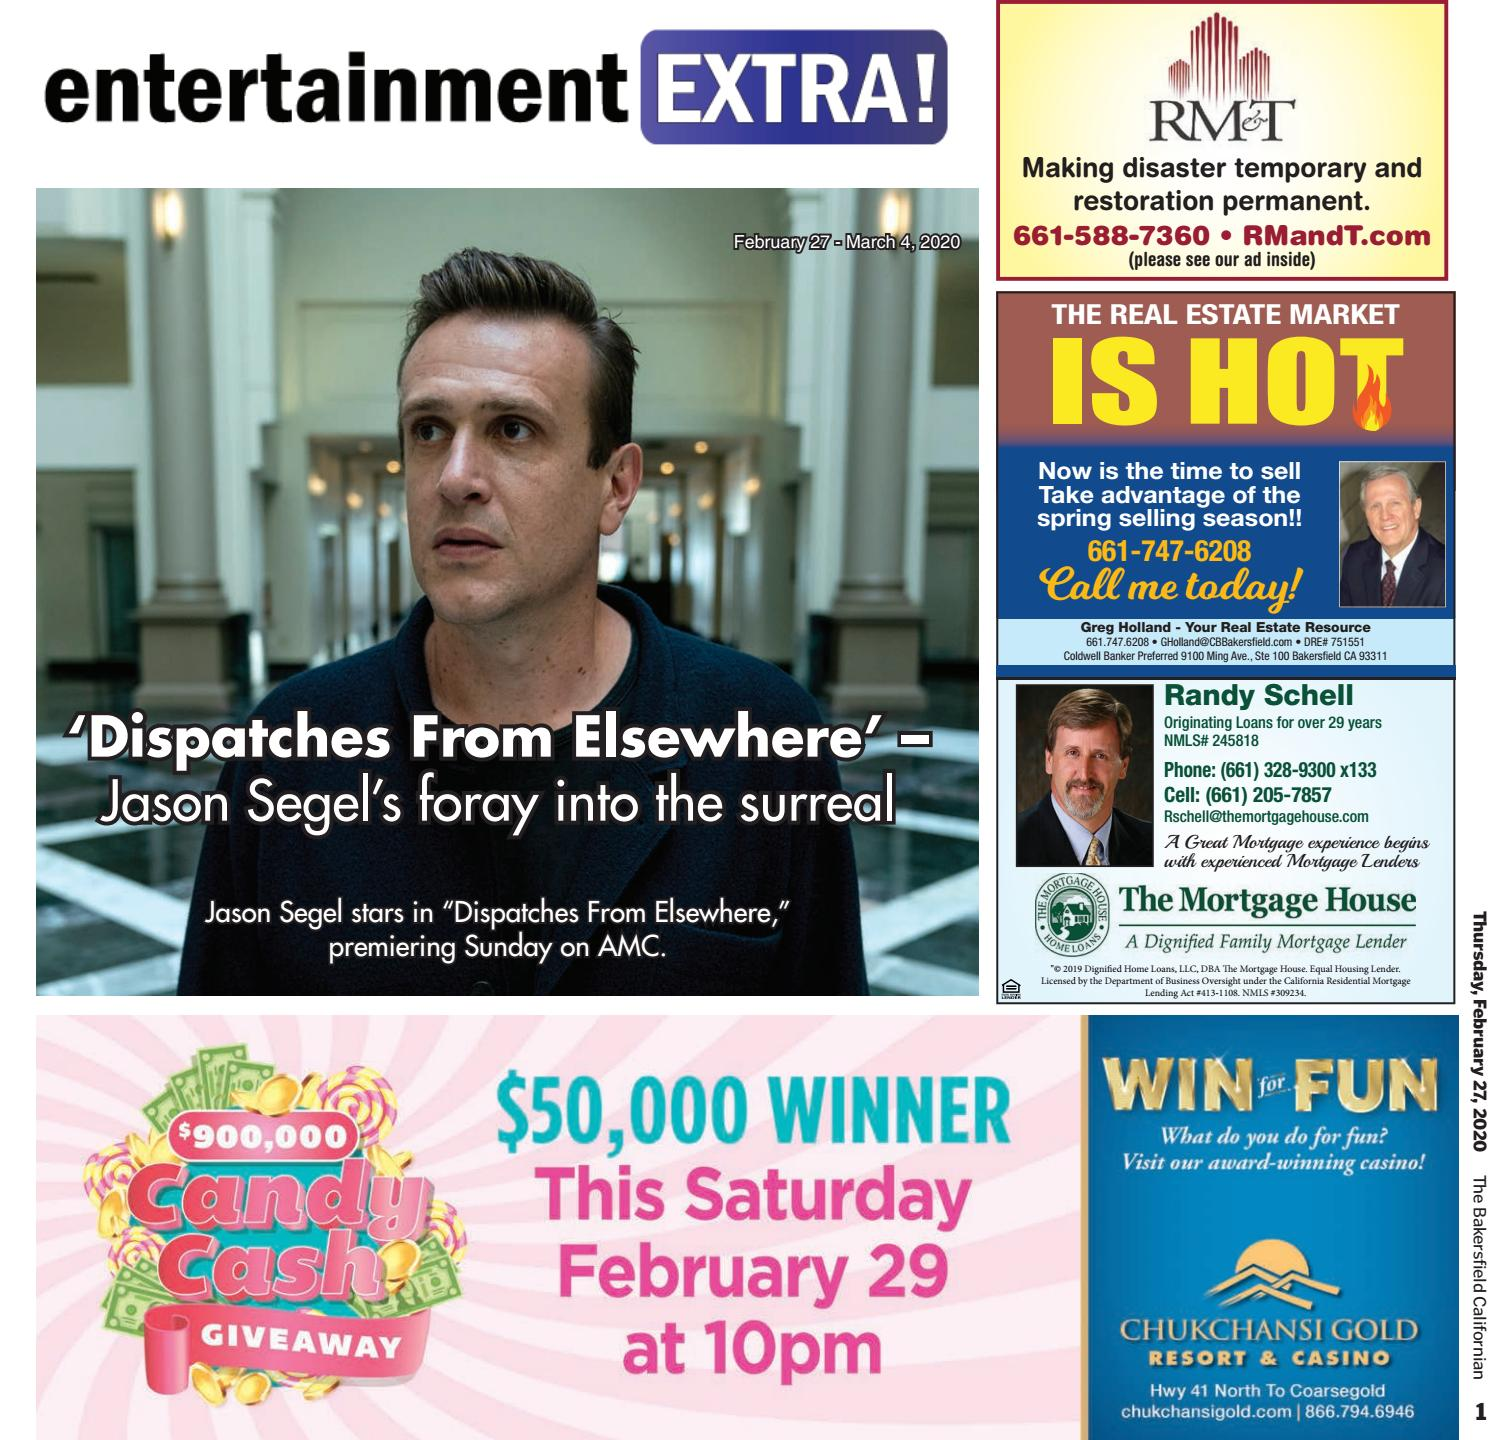 Entertainment Extra Feb 27 March 4 2020 By The Bakersfield Californian Specialty Publications Issuu